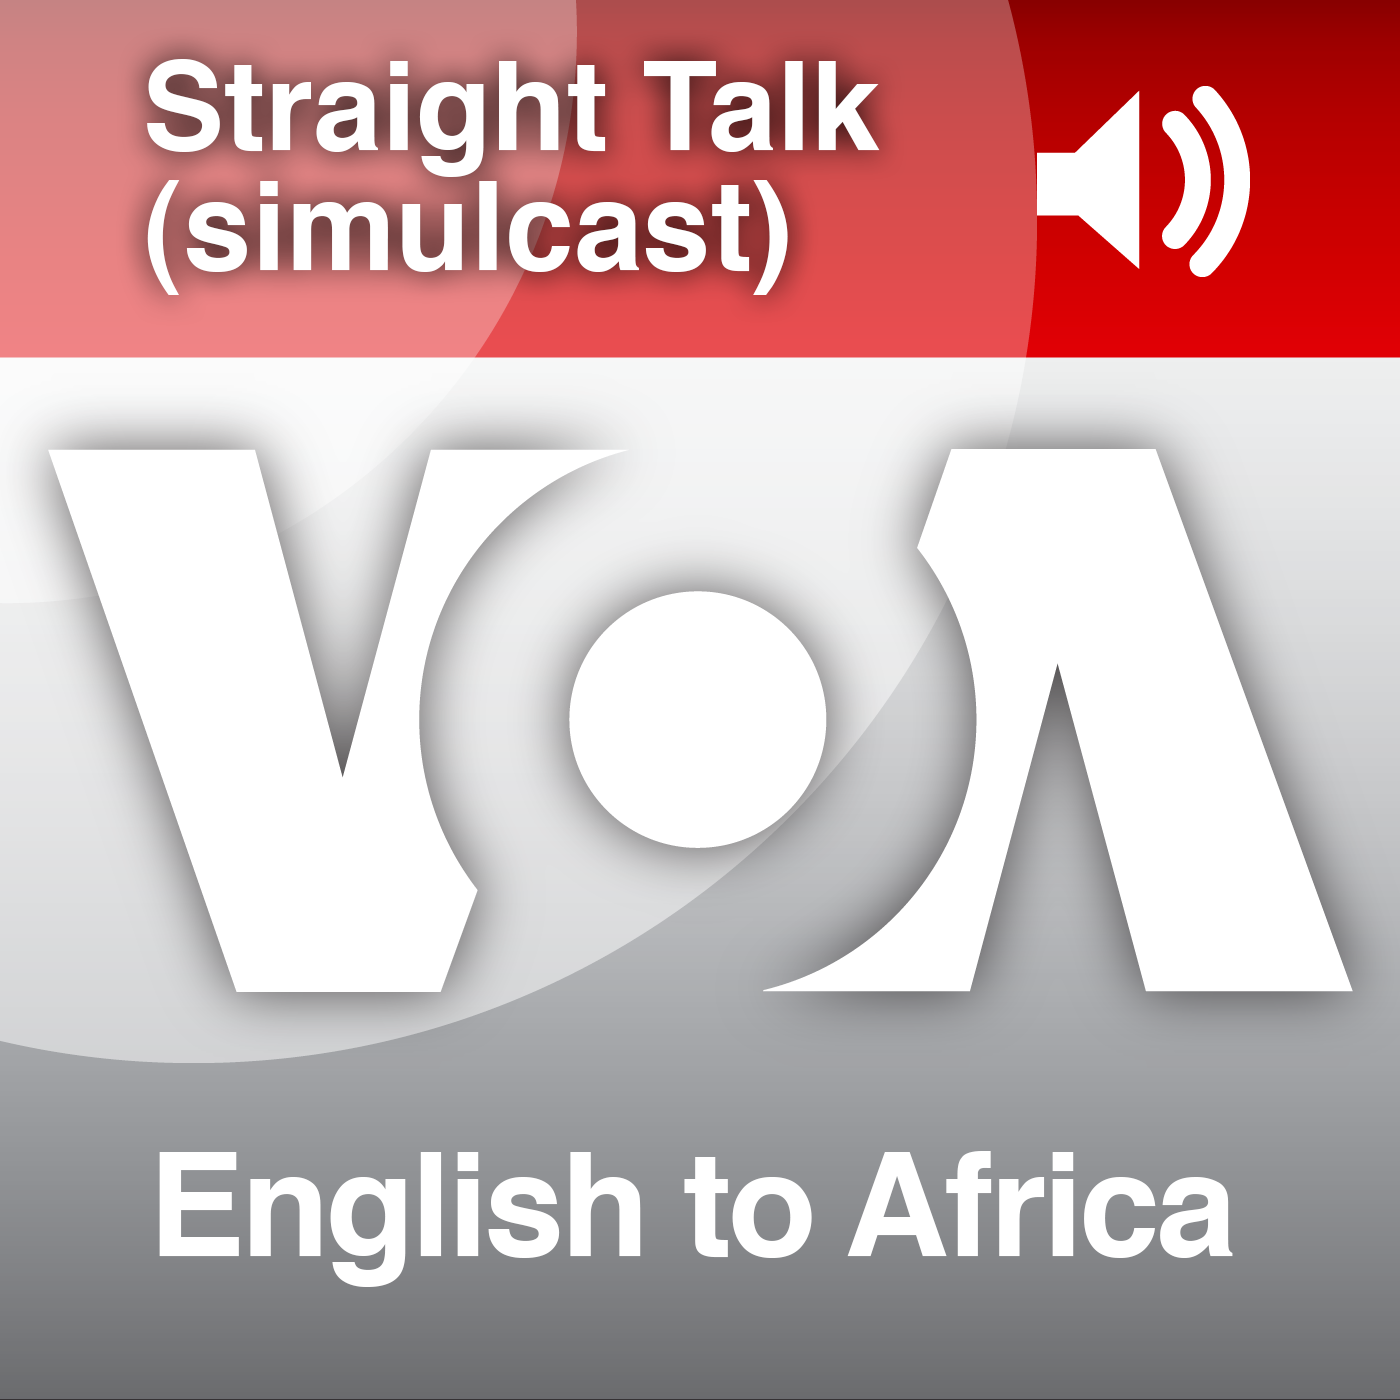 Straight Talk Africa [simulcast] - Voice of America